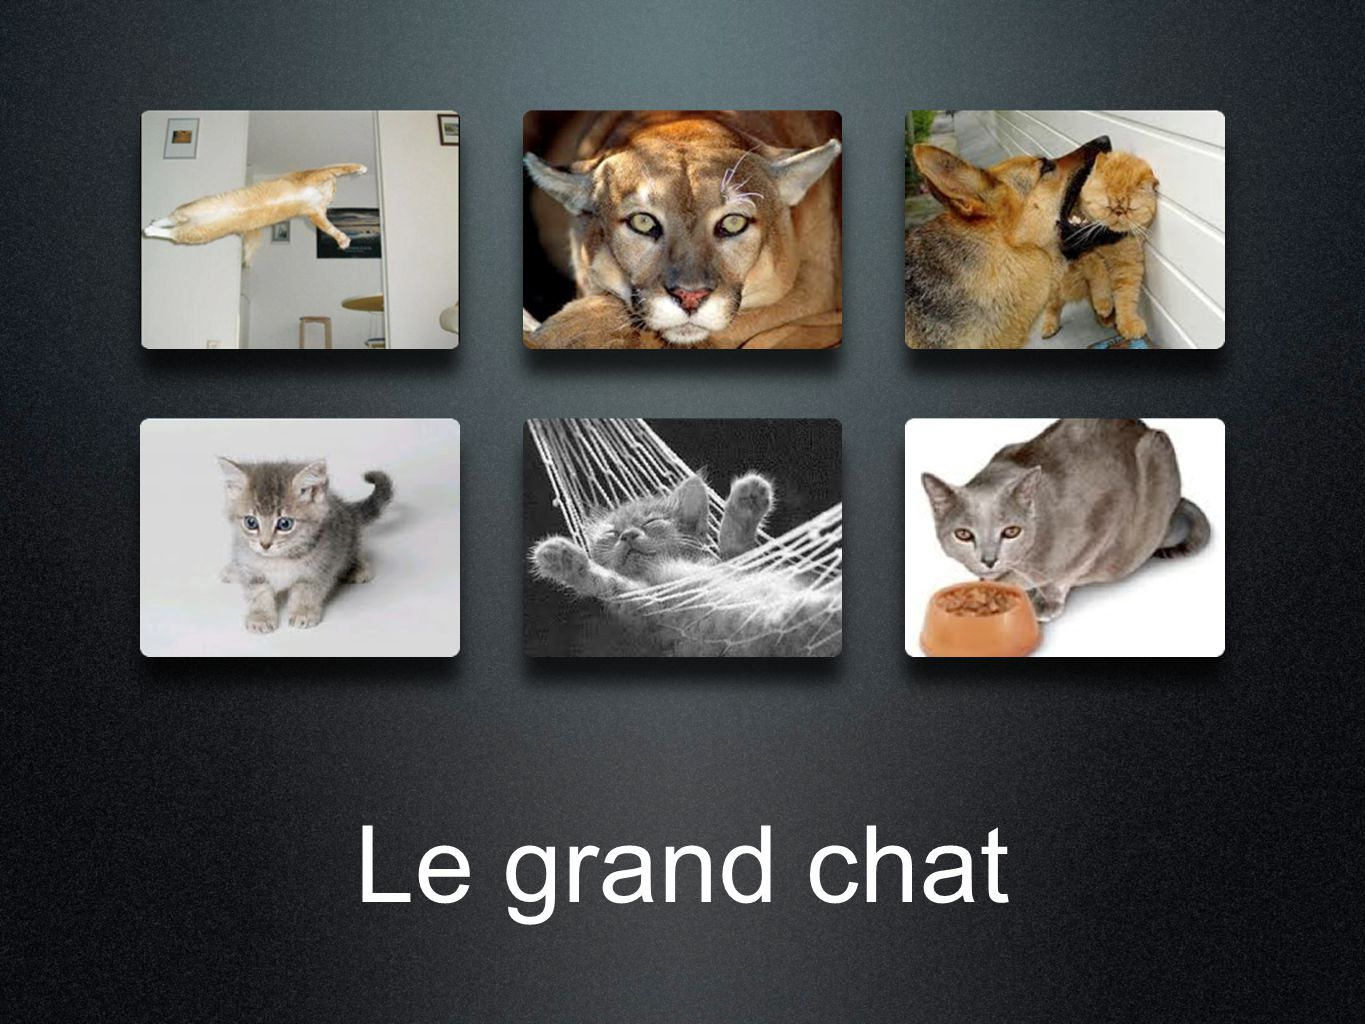 Le grand chat